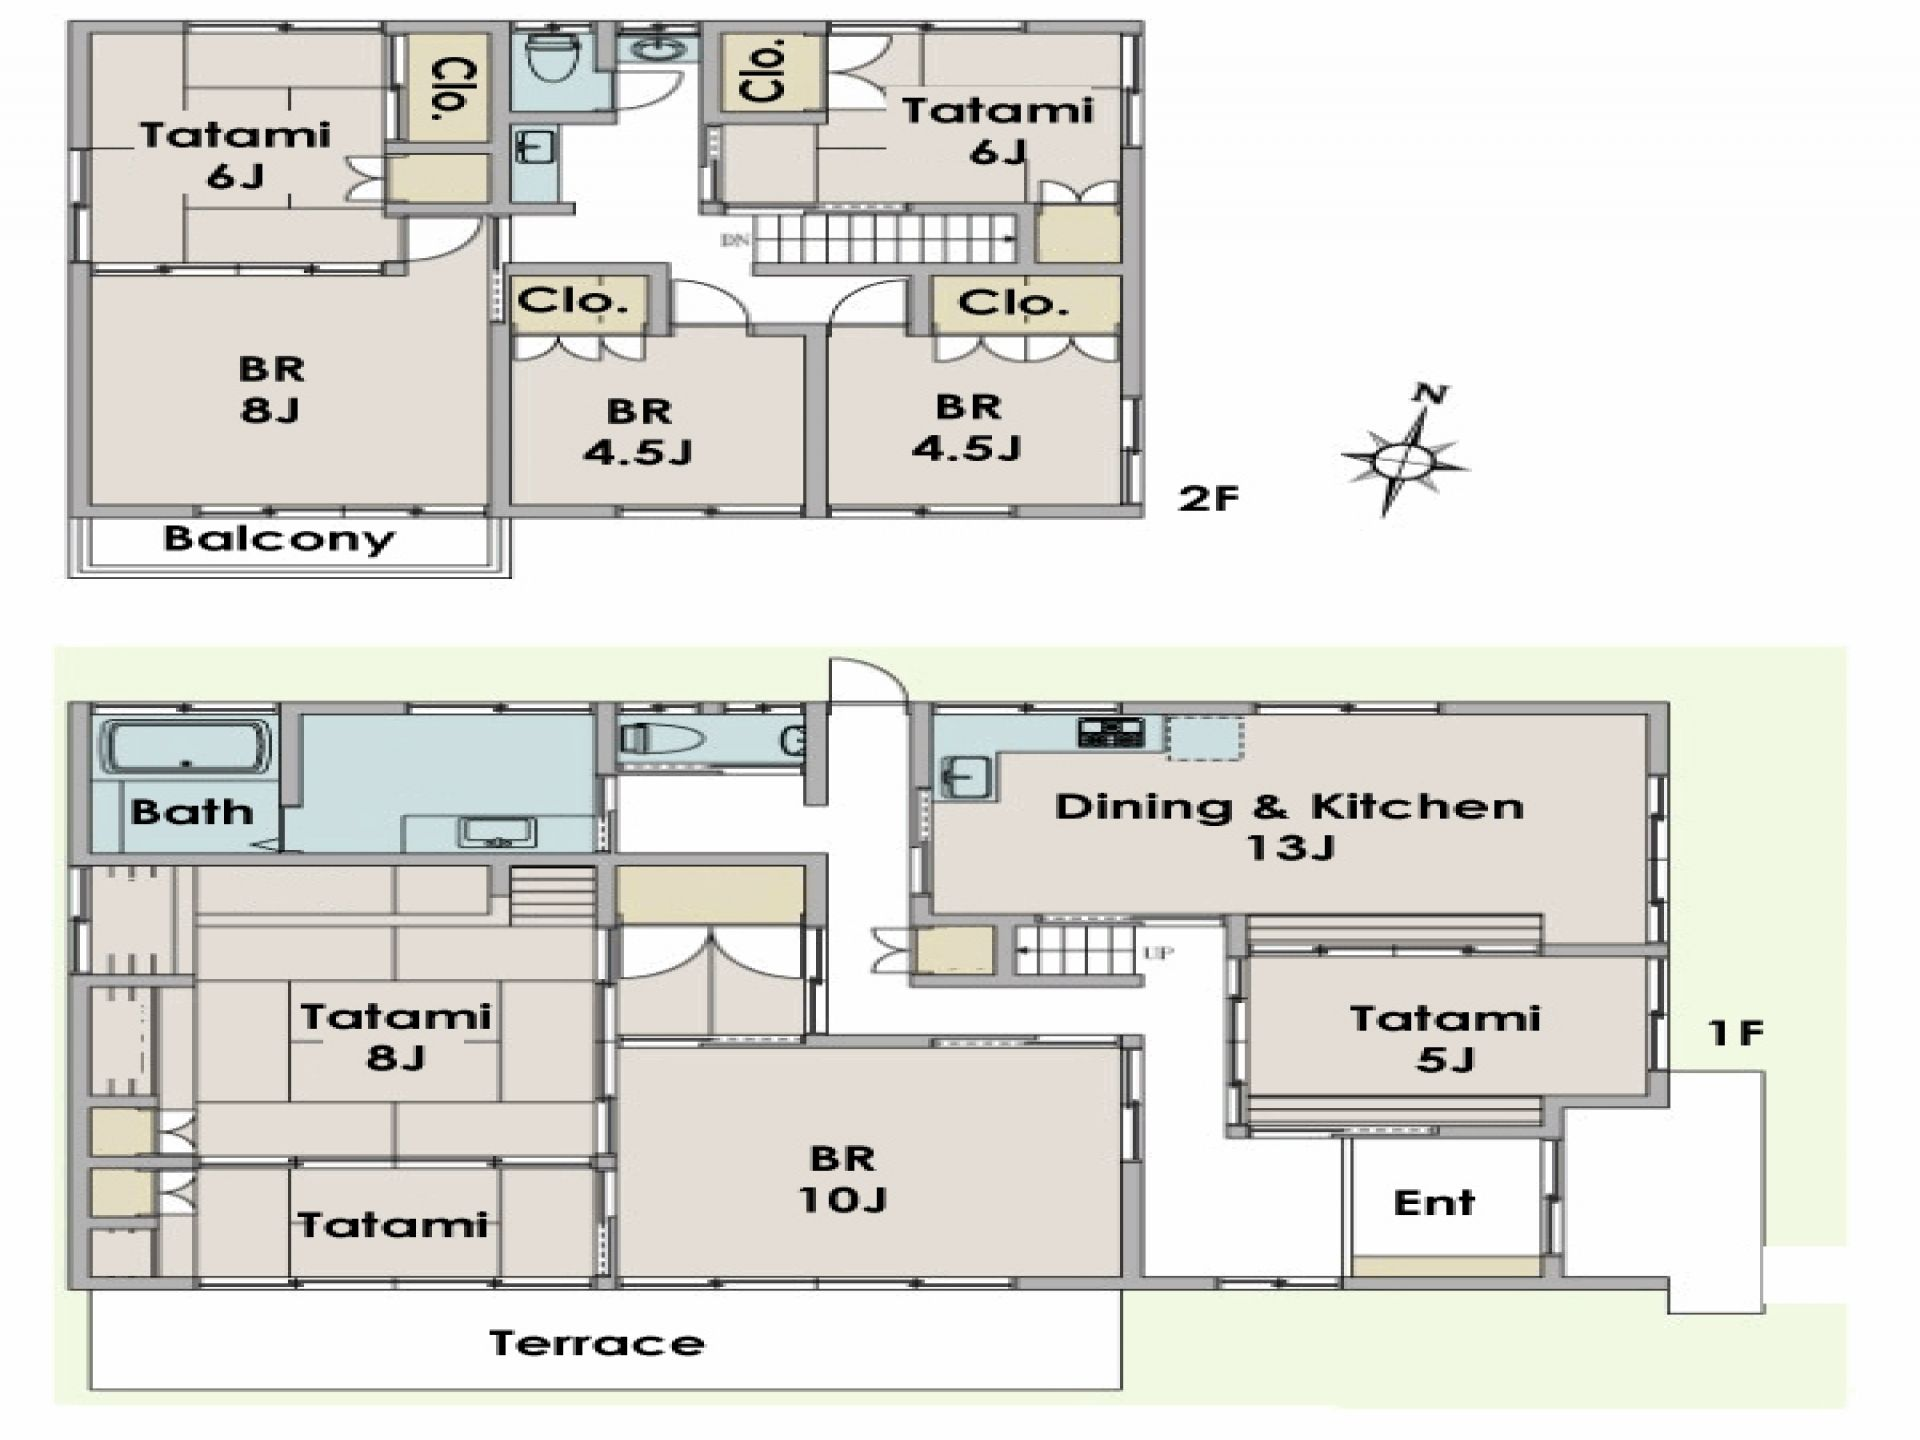 gallery for gt traditional japanese house floor plan colonial home floor plans traditional colonial house floor